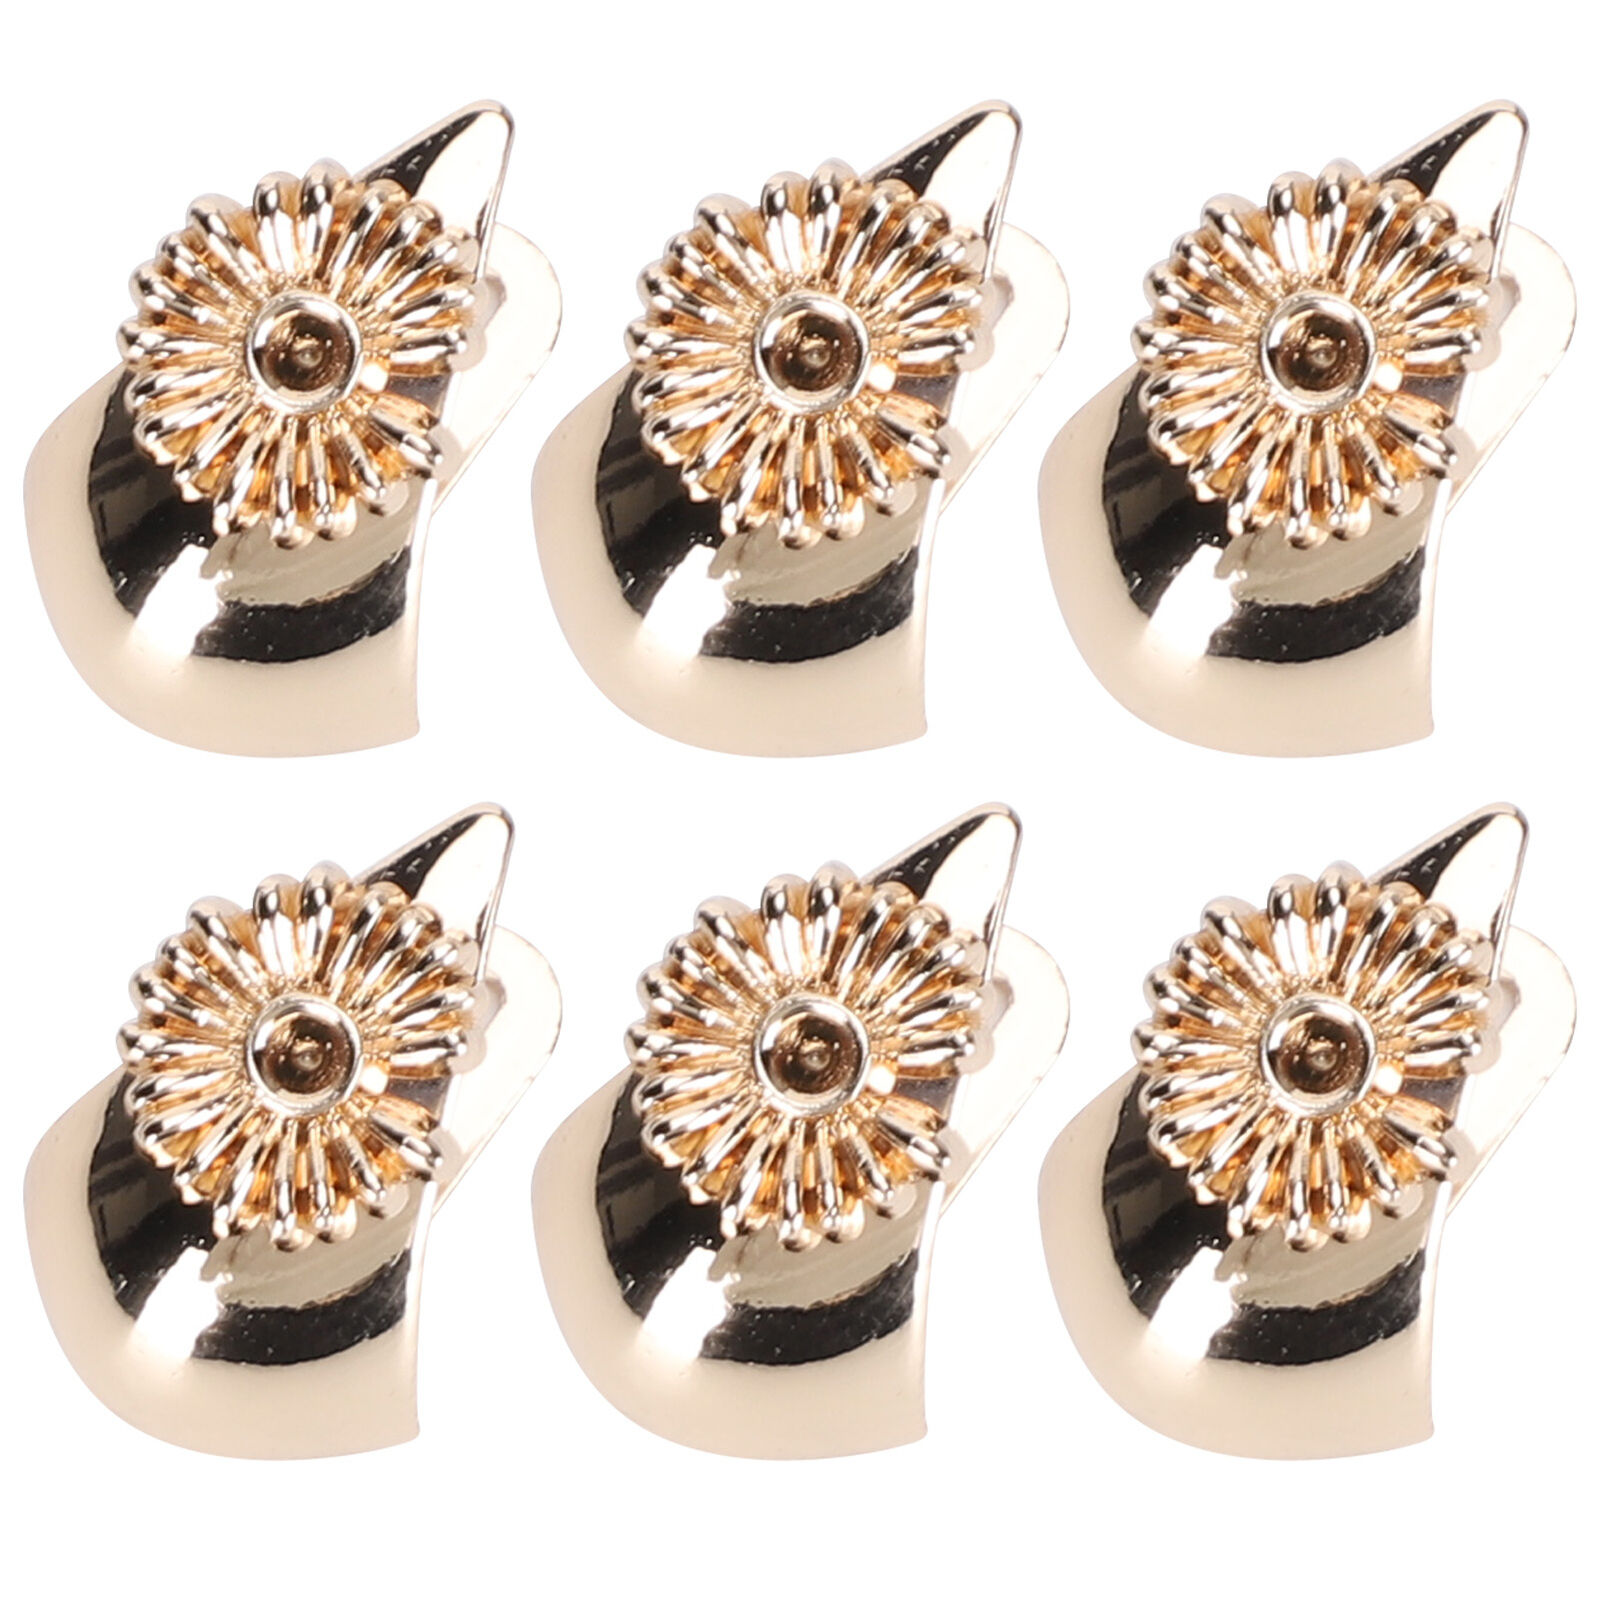 6 Pcs Shoe Clips All-Match Boots Buckle Uppers Bridal Decoration Accessories